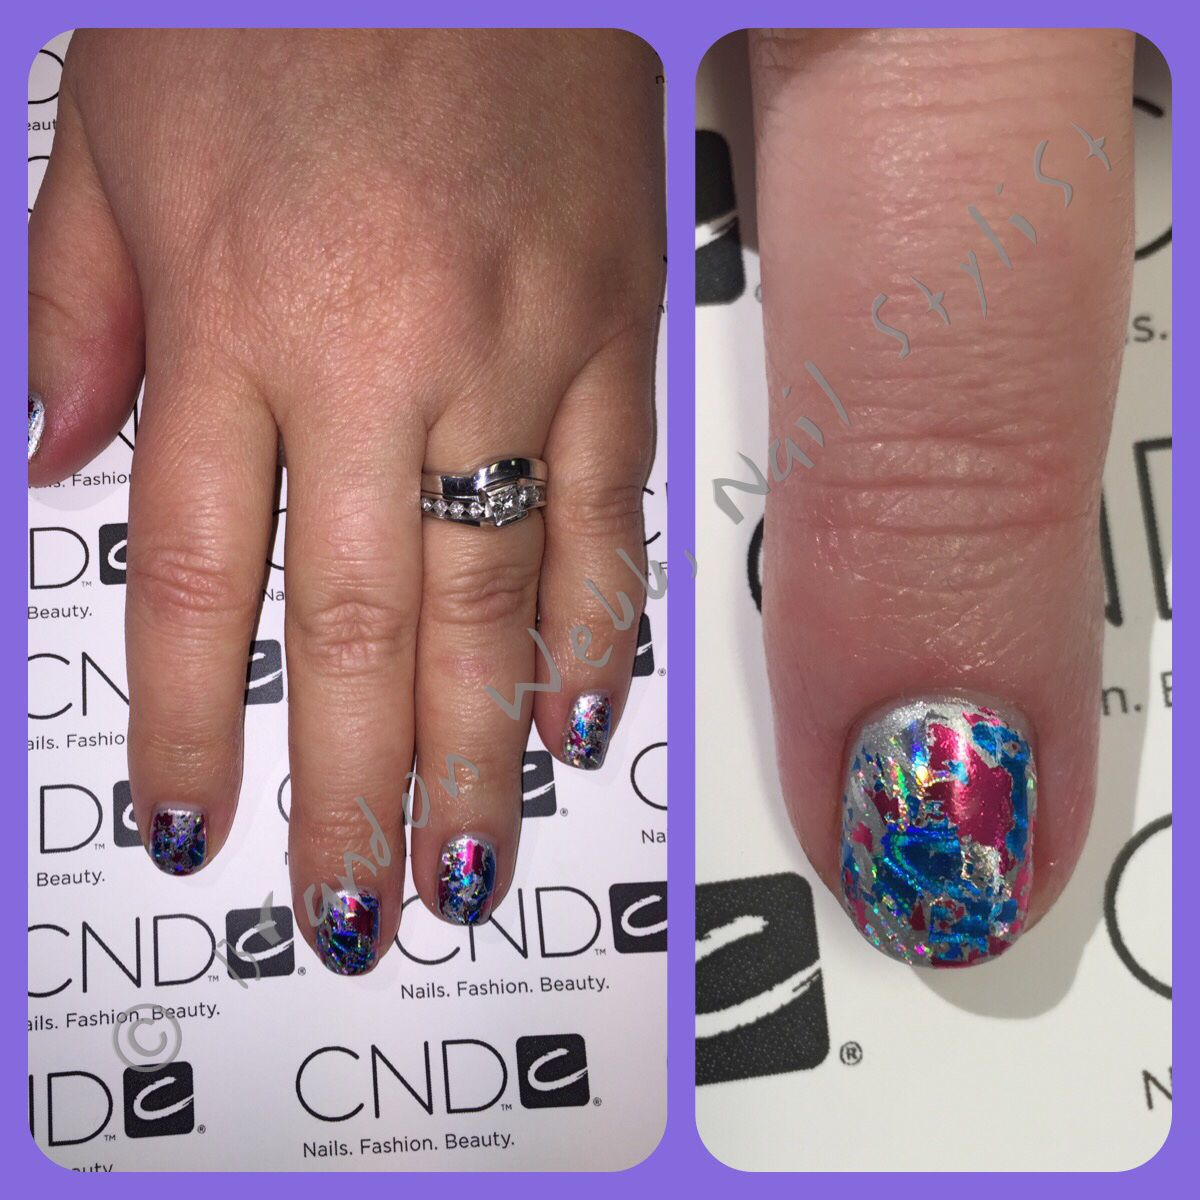 BLING!!! #cnd #cndshellac #gowithacndpo